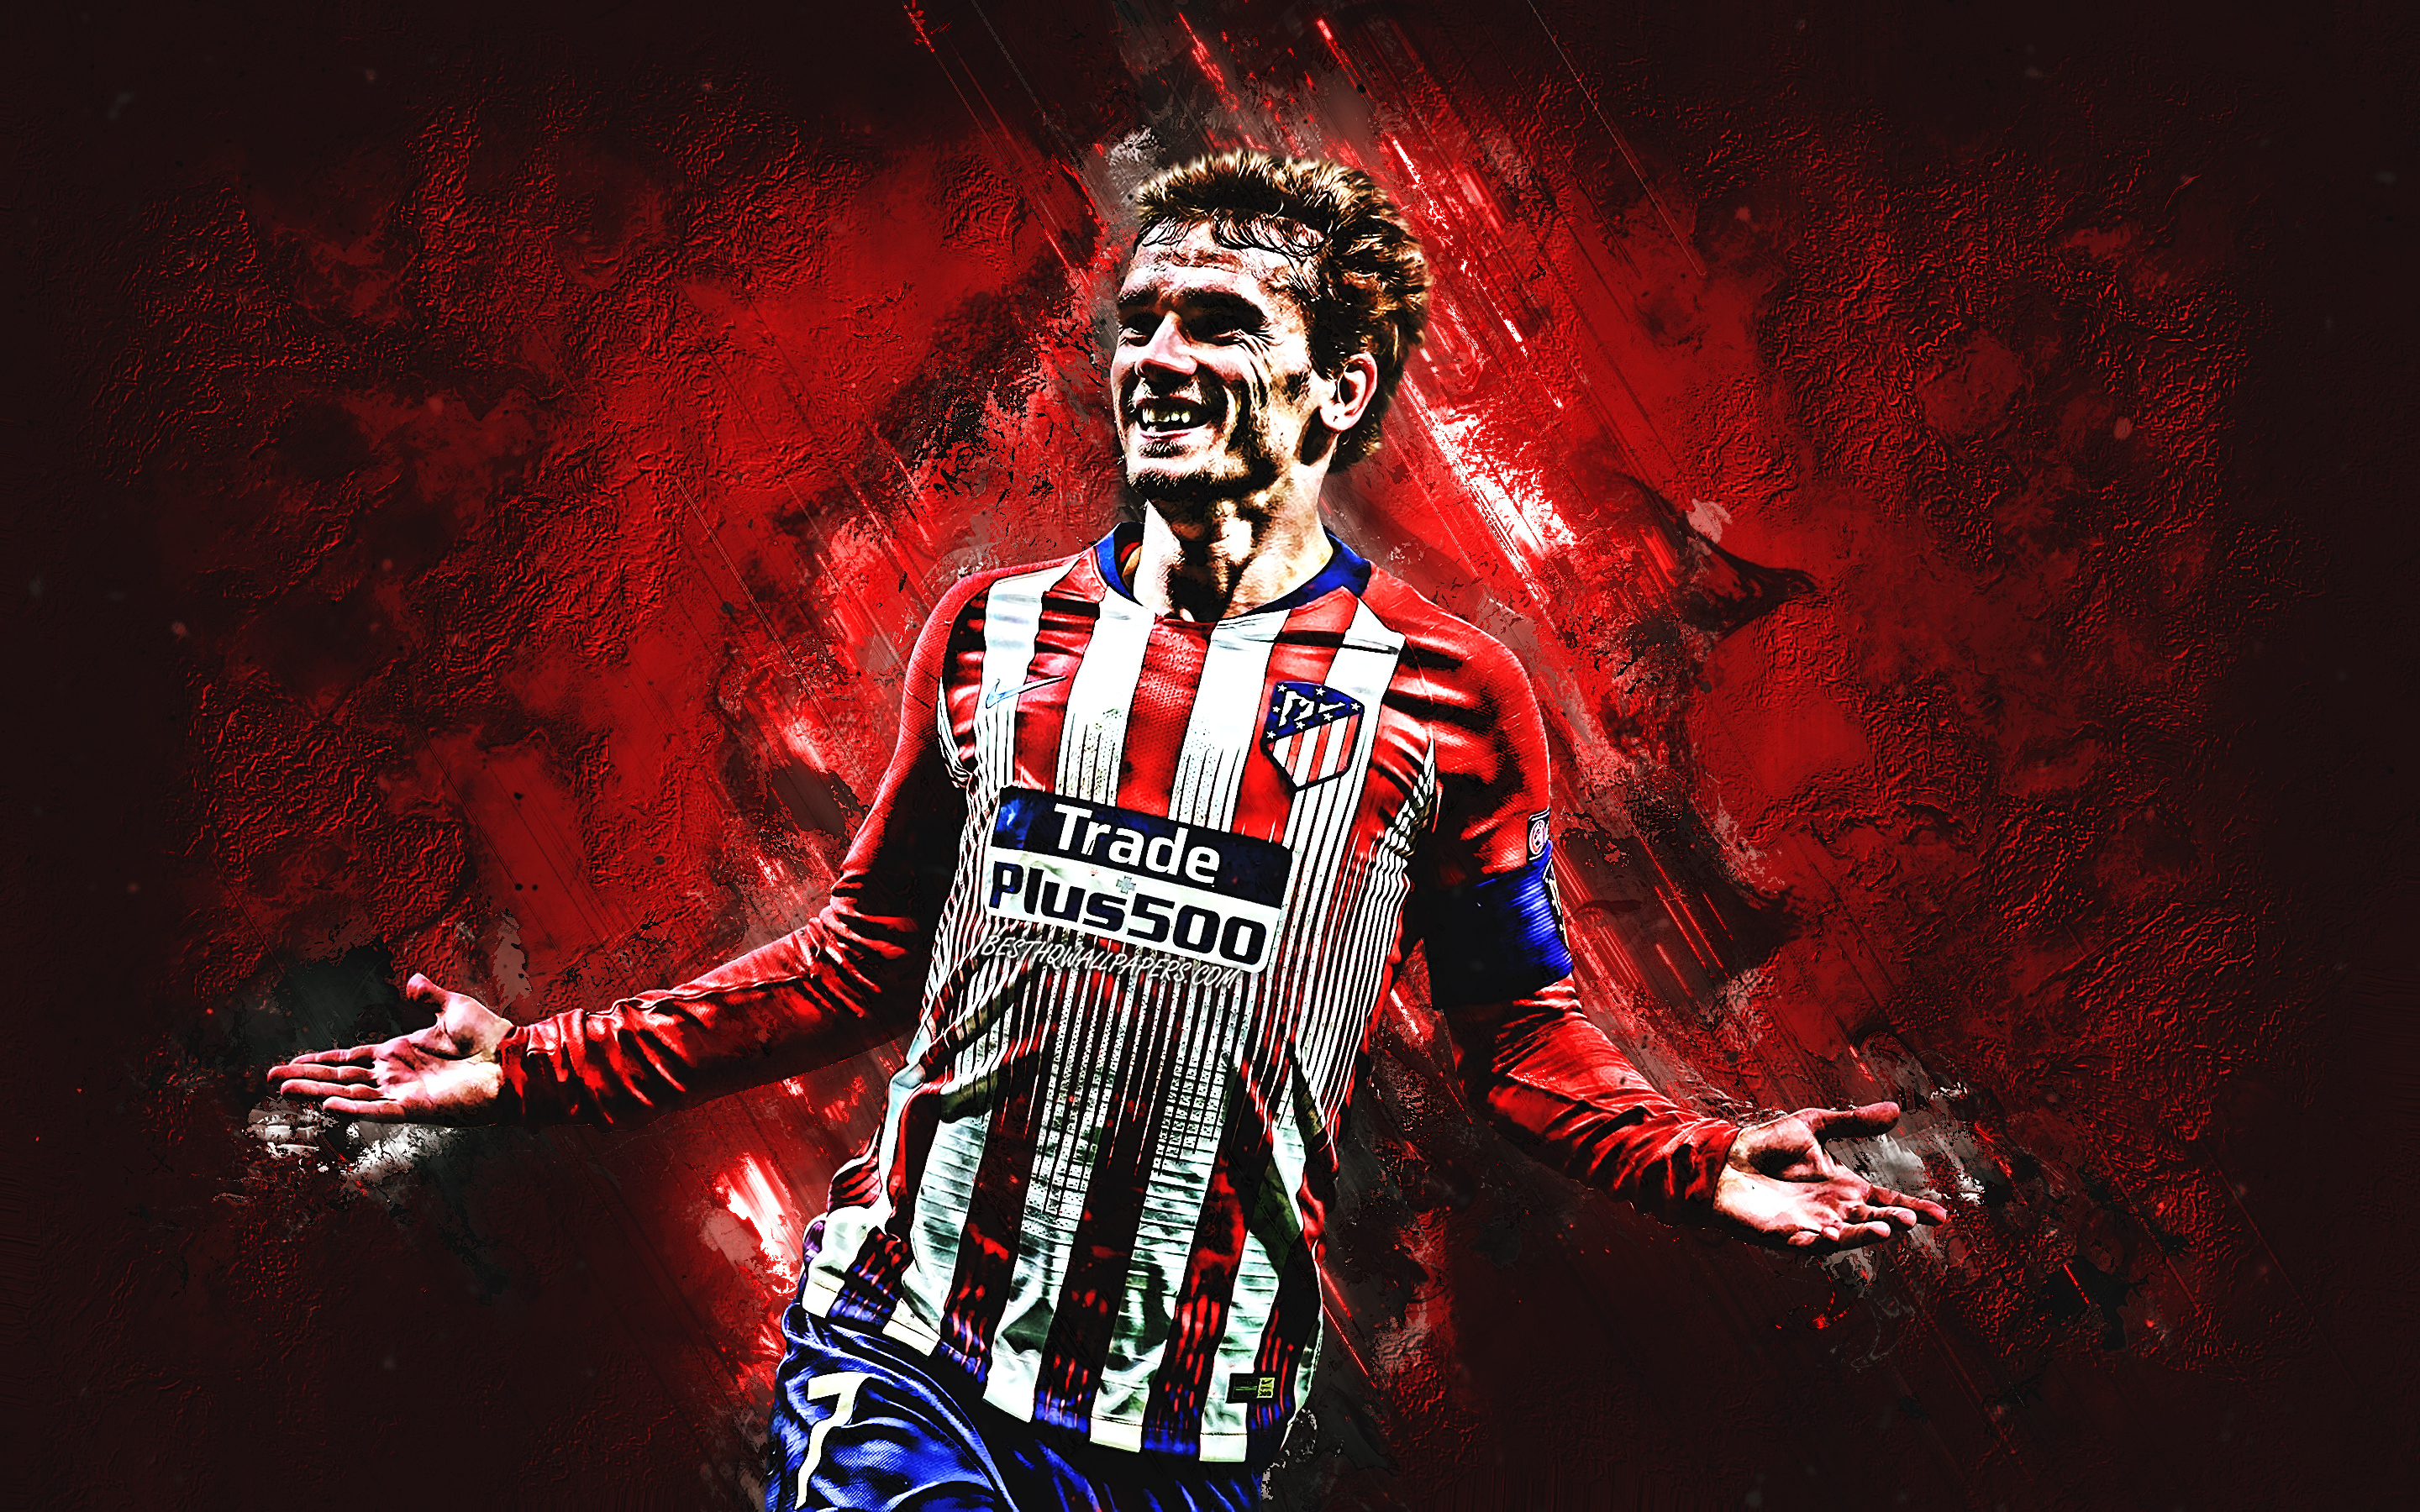 Antoine Griezmann, Atletico Madrid, striker, joy, red stone, famous footballers, football, french footballers, grunge, La Liga, Spain, Griezmann